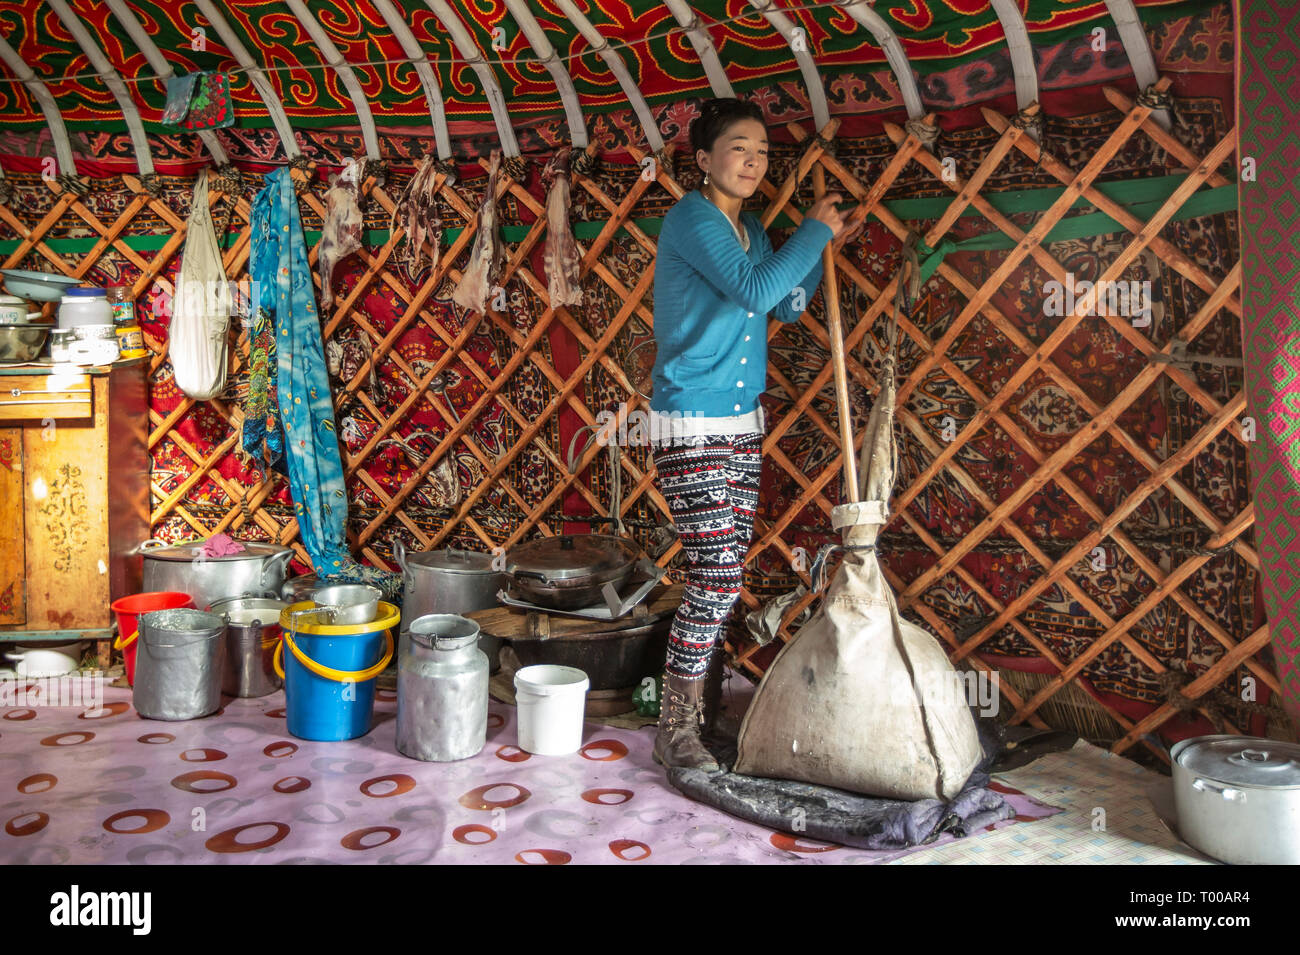 Bayan Olgii, Mongolia, 29th September 2015: Mongoilian kazakh nomad  woman making cheese  in her home yurt Stock Photo